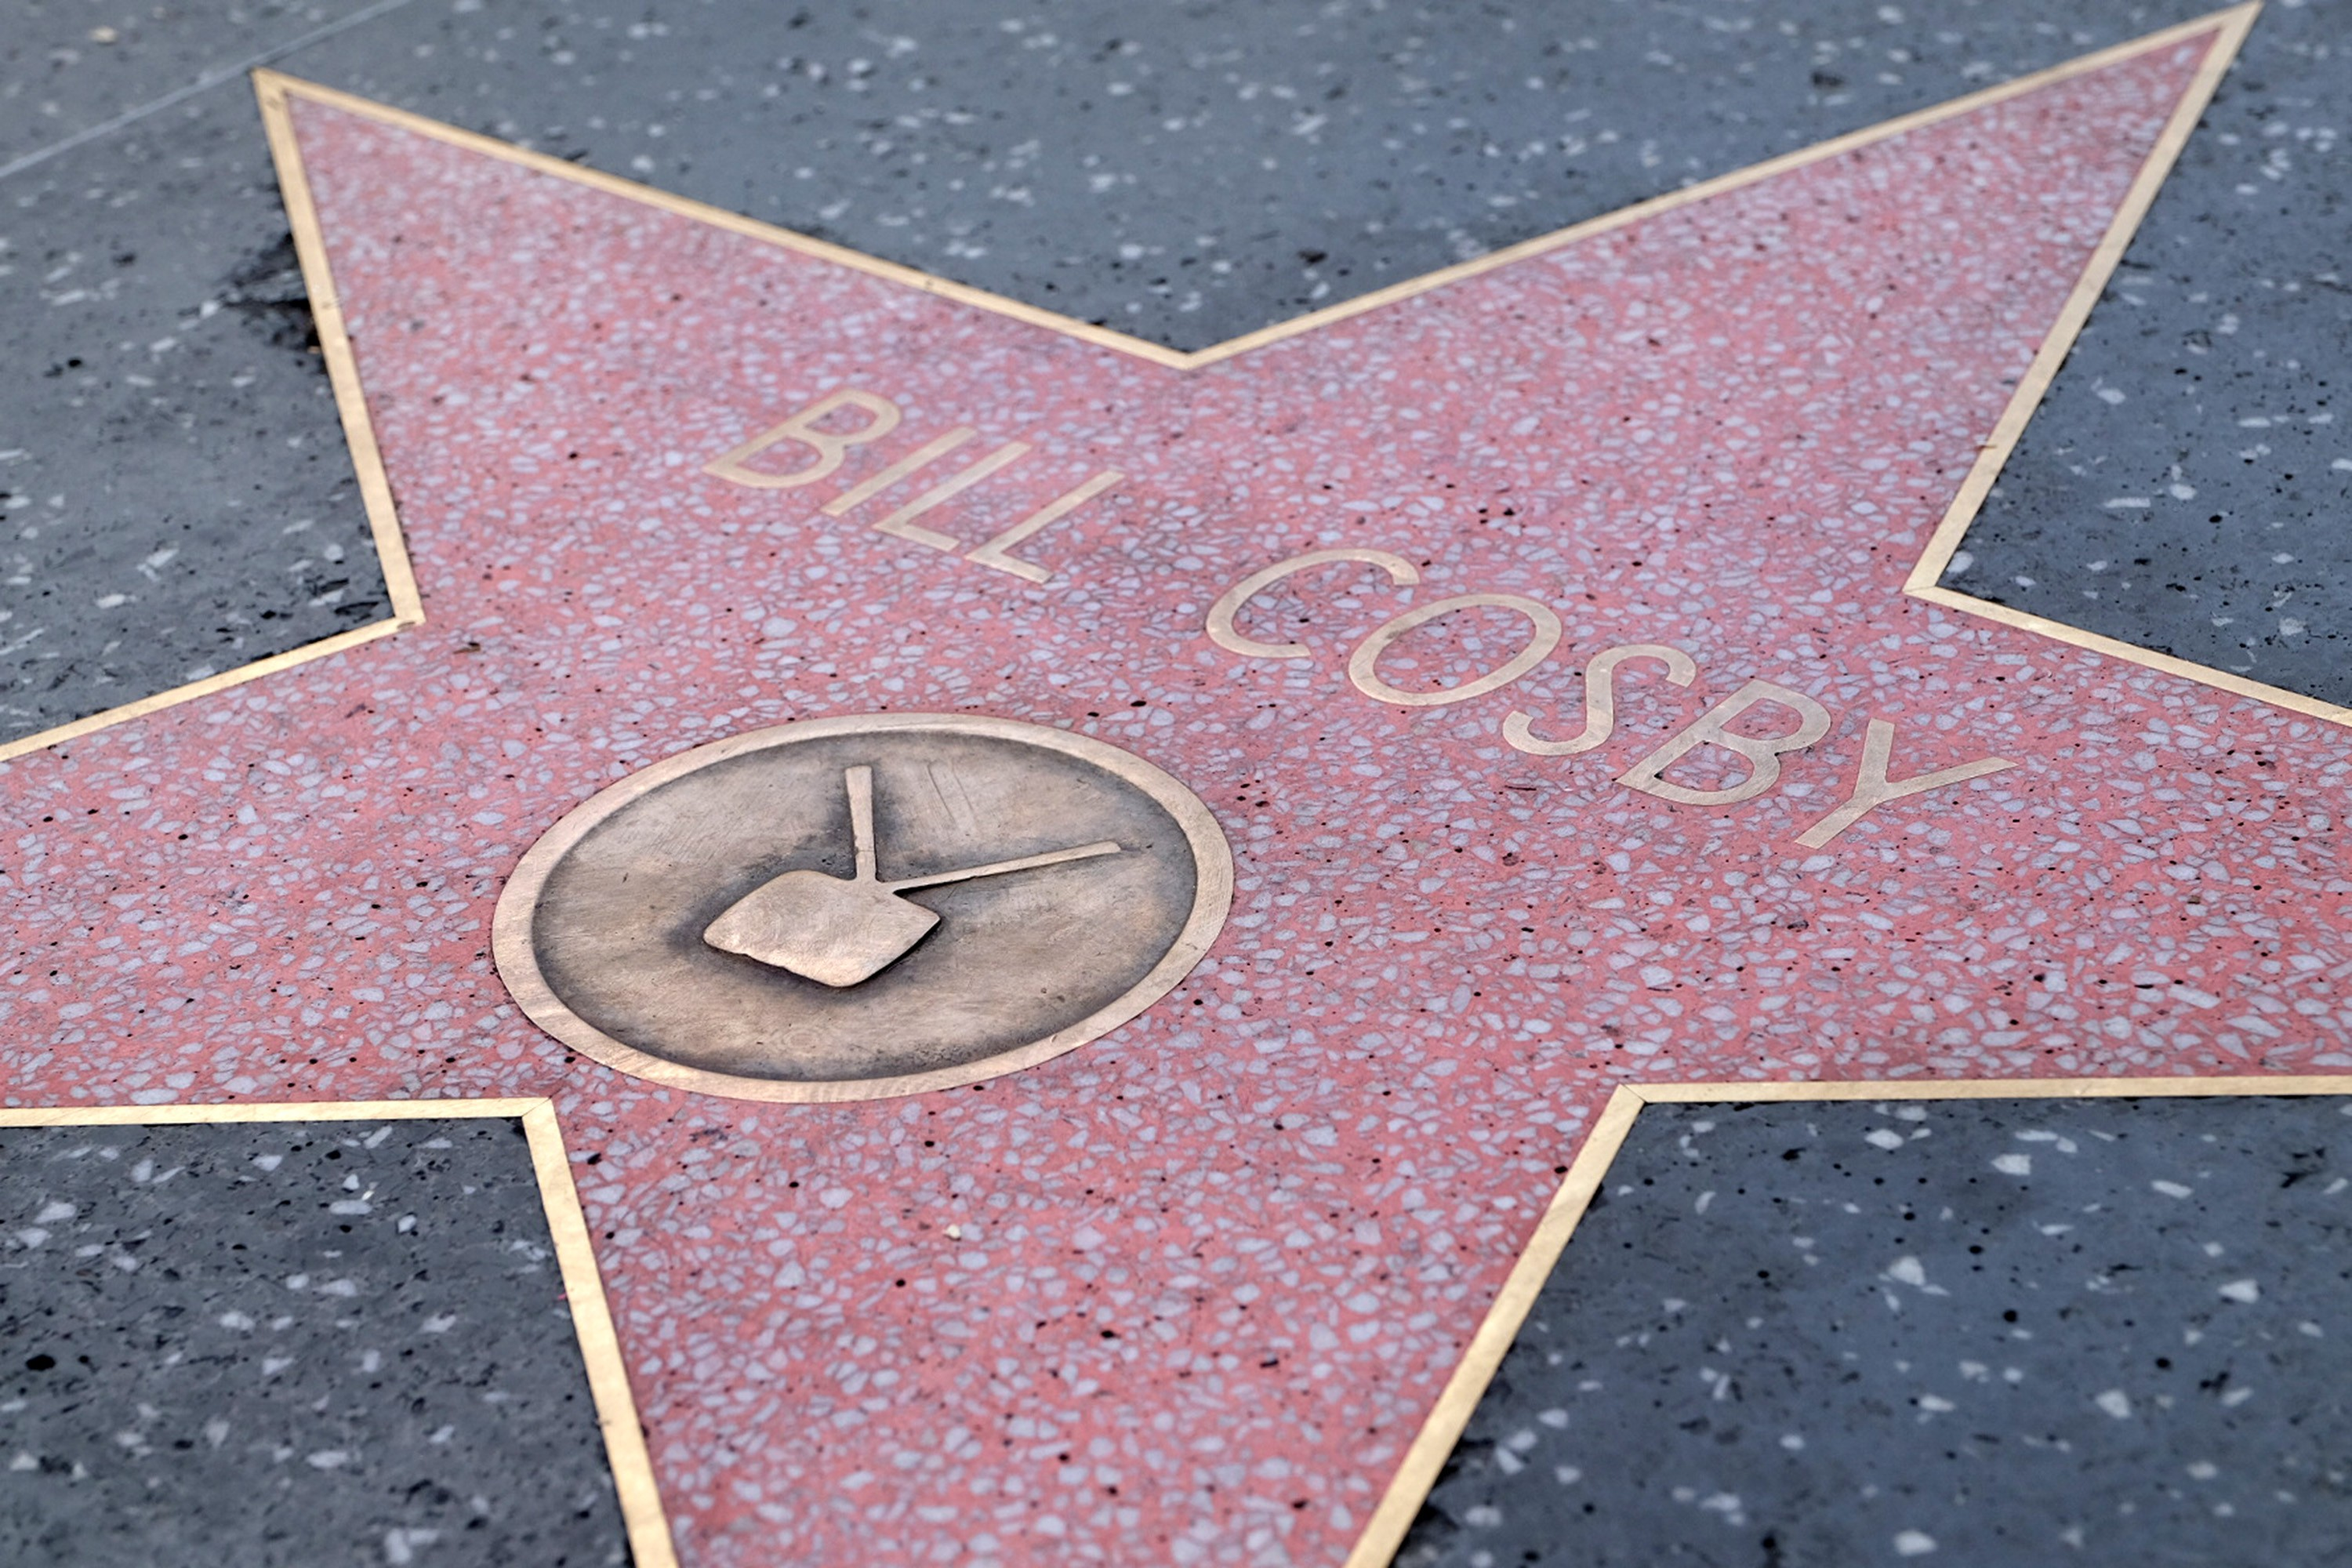 A estrela do ator Bill Cosby na Calçada da Fama de Hollywood (Foto: Getty Images)